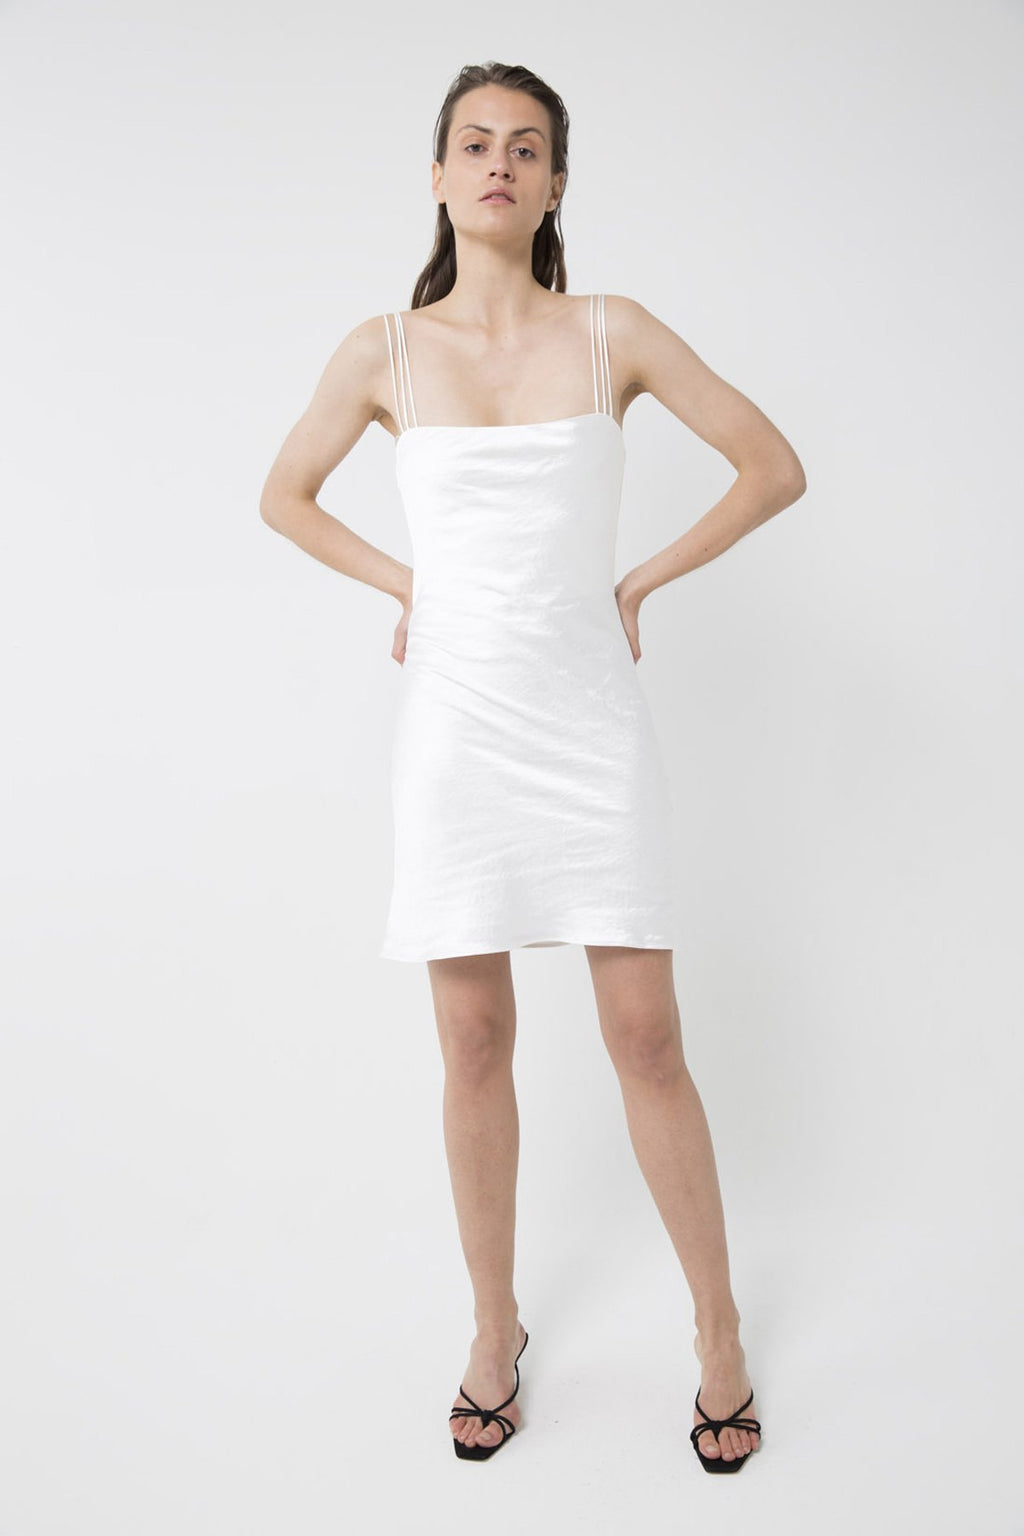 UNIKONCEPT lifestyle boutique: Bridal wear: Model is wearing white, satin, mini third form slip dress. The 90's bias mini slip dress comes with 3 strap detail and square neckline.